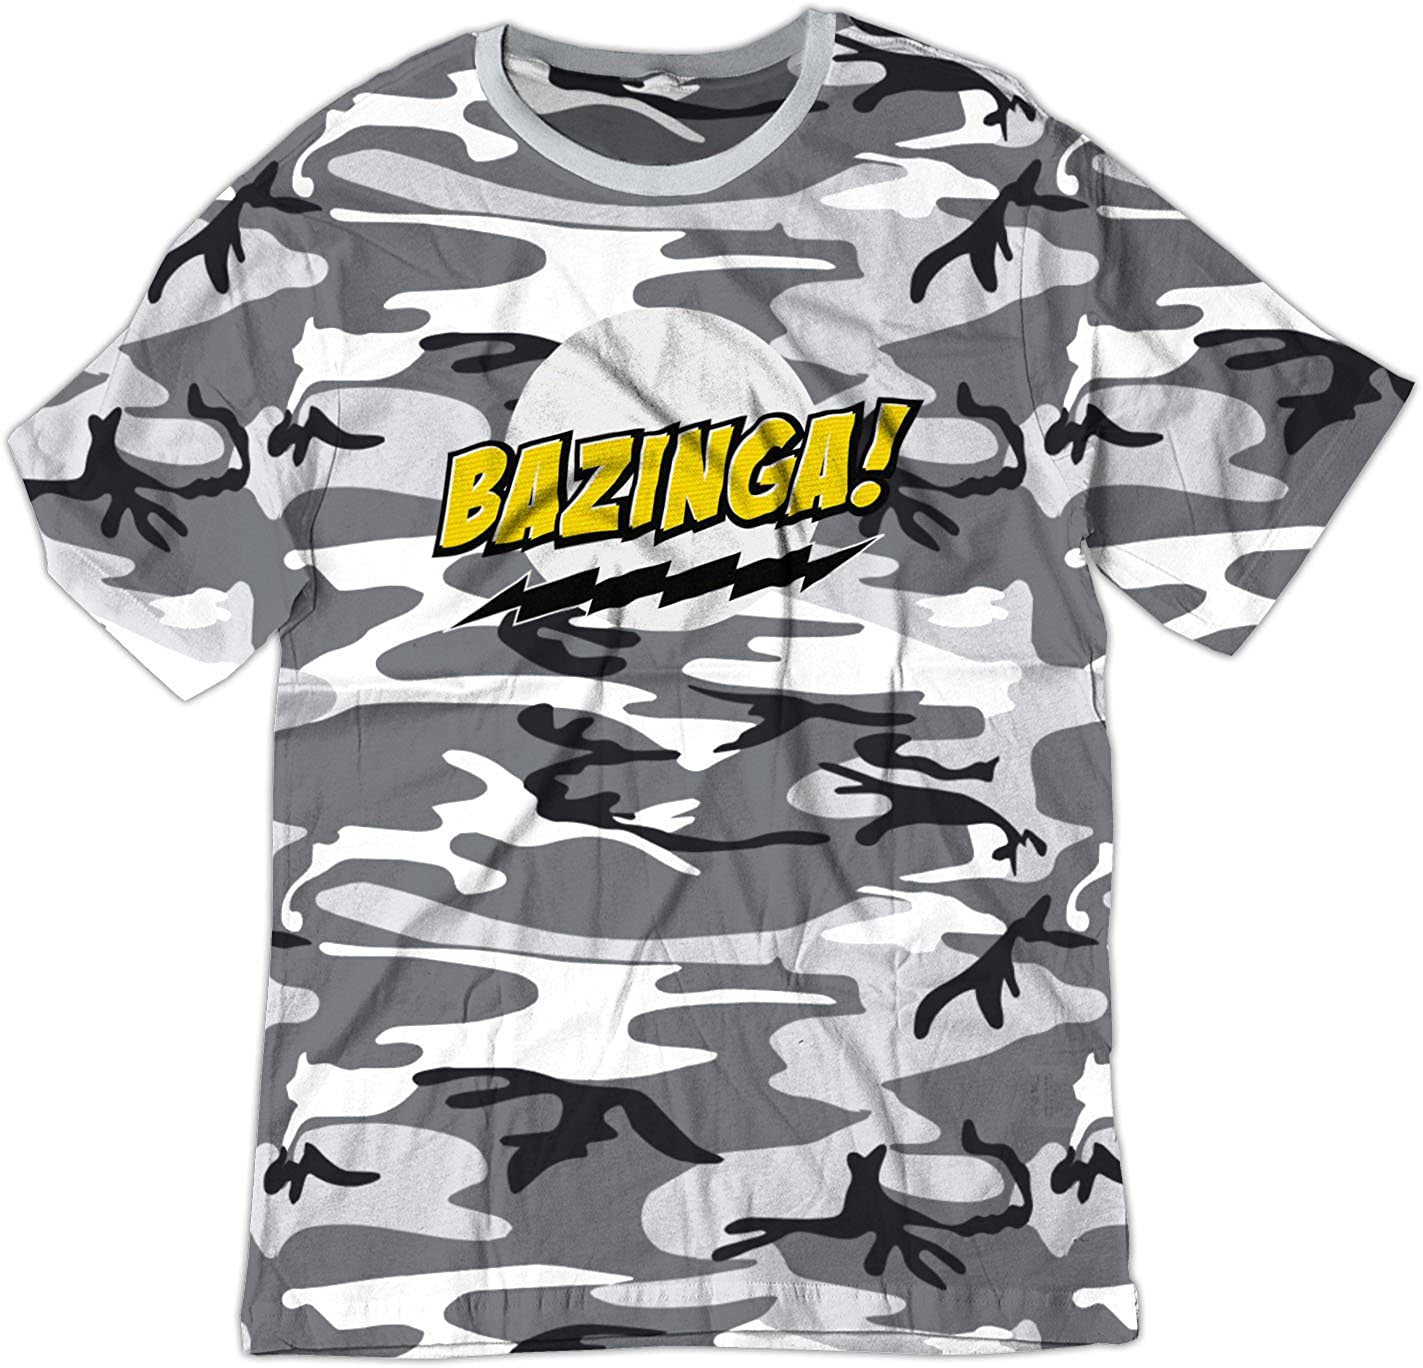 BSW Youth Bazinga! Big Bang Theory Sheldon Cooper Shirt 1388-1Y